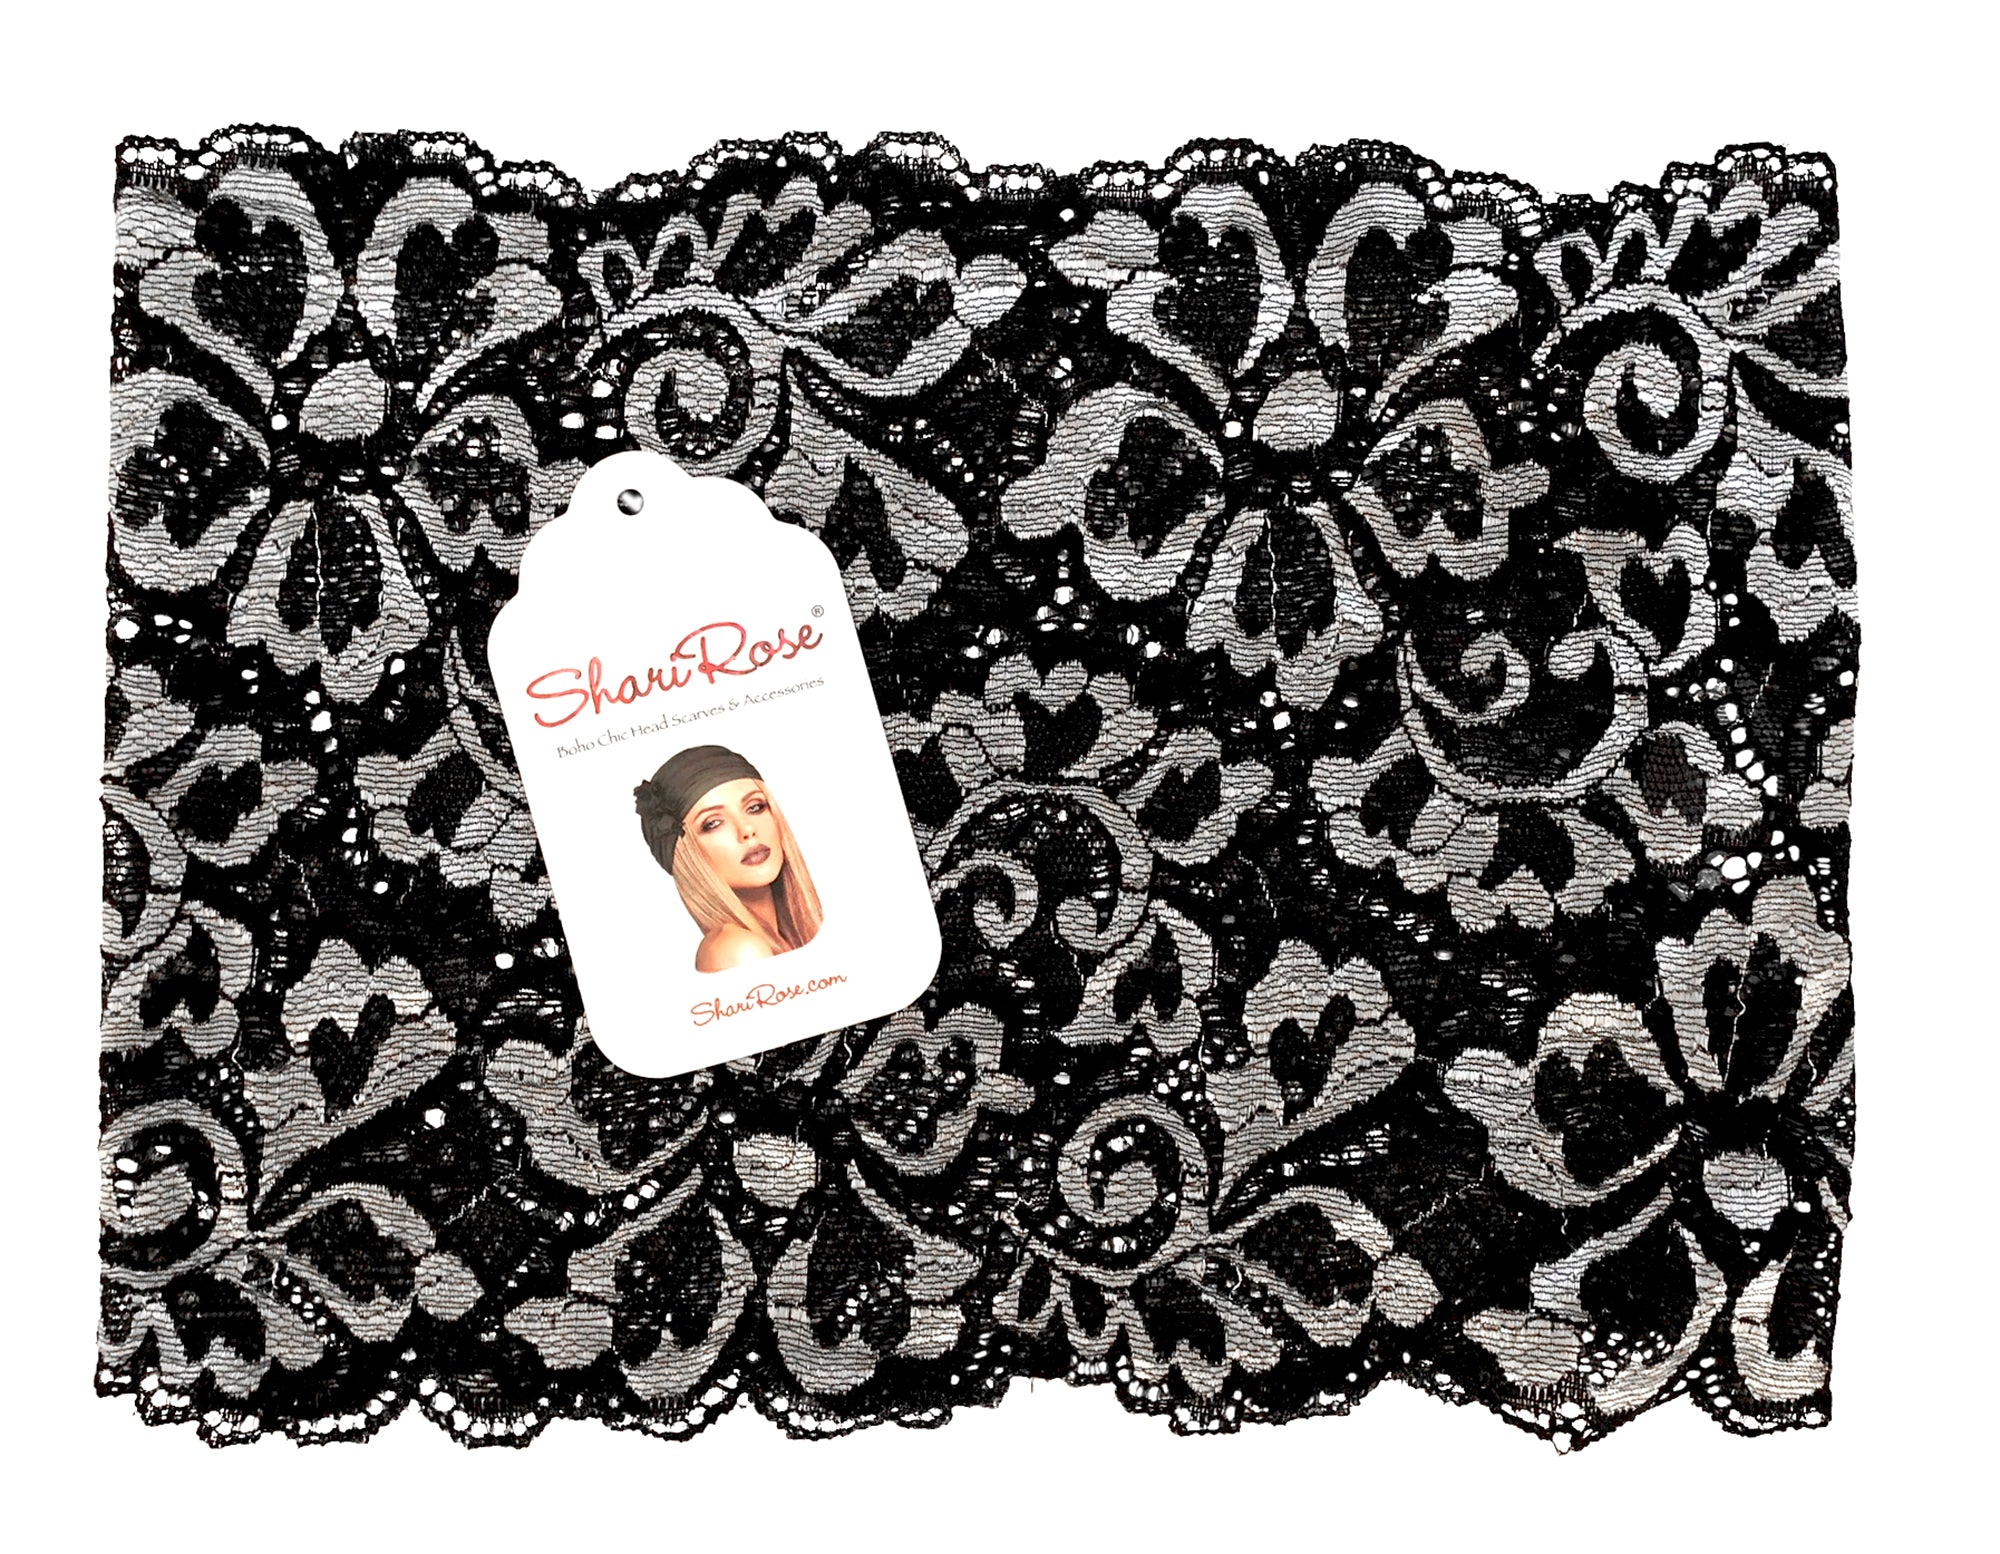 Black silver floral shabby chic lace headband